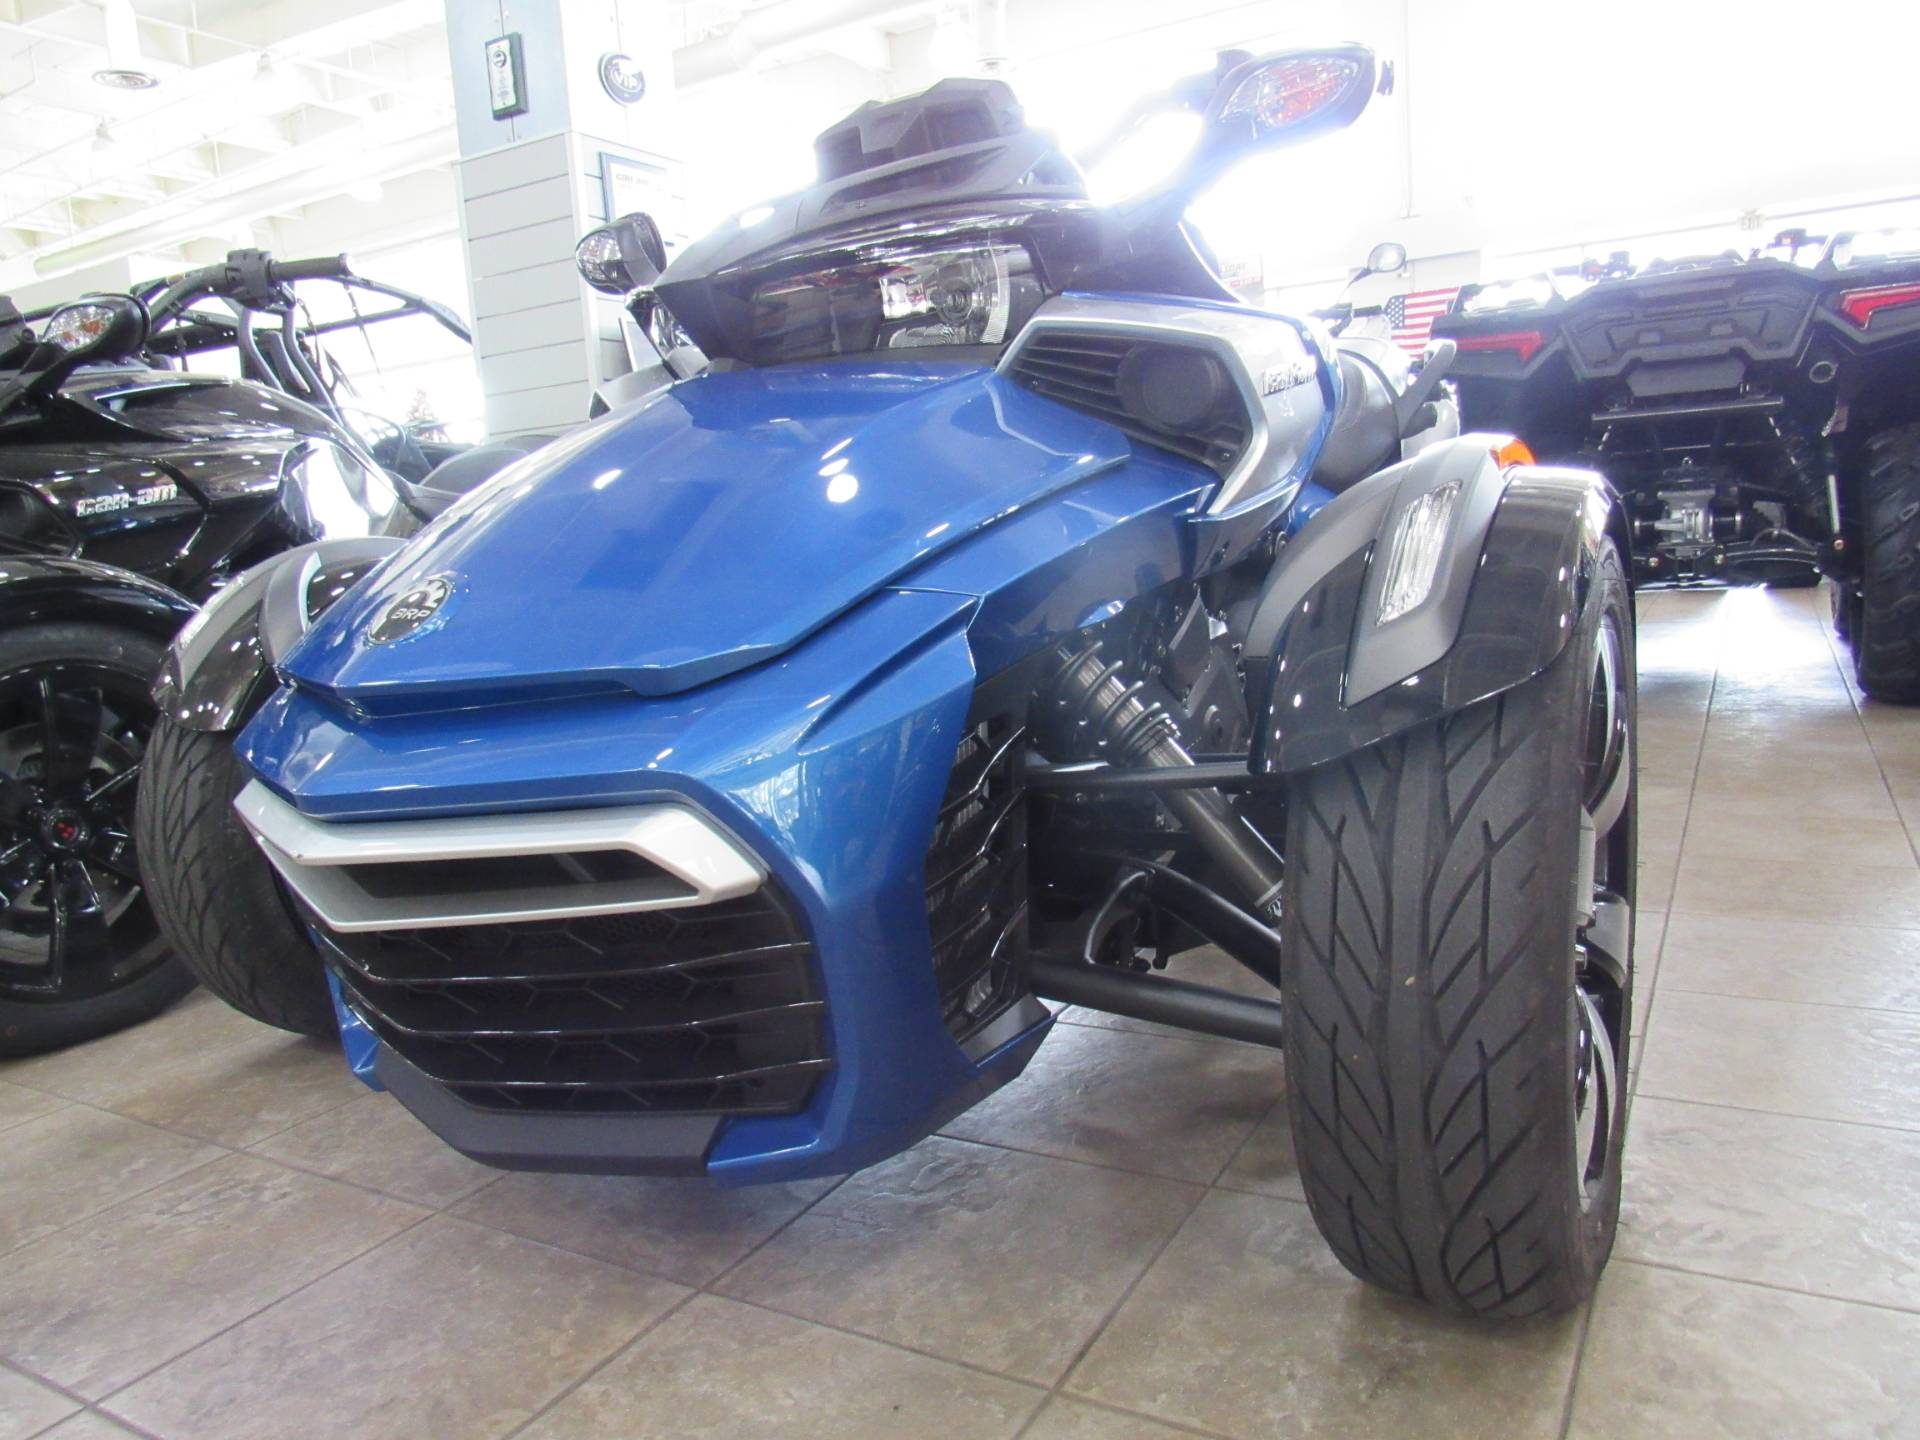 2018 Can-Am Spyder F3-S SE6 in Irvine, California